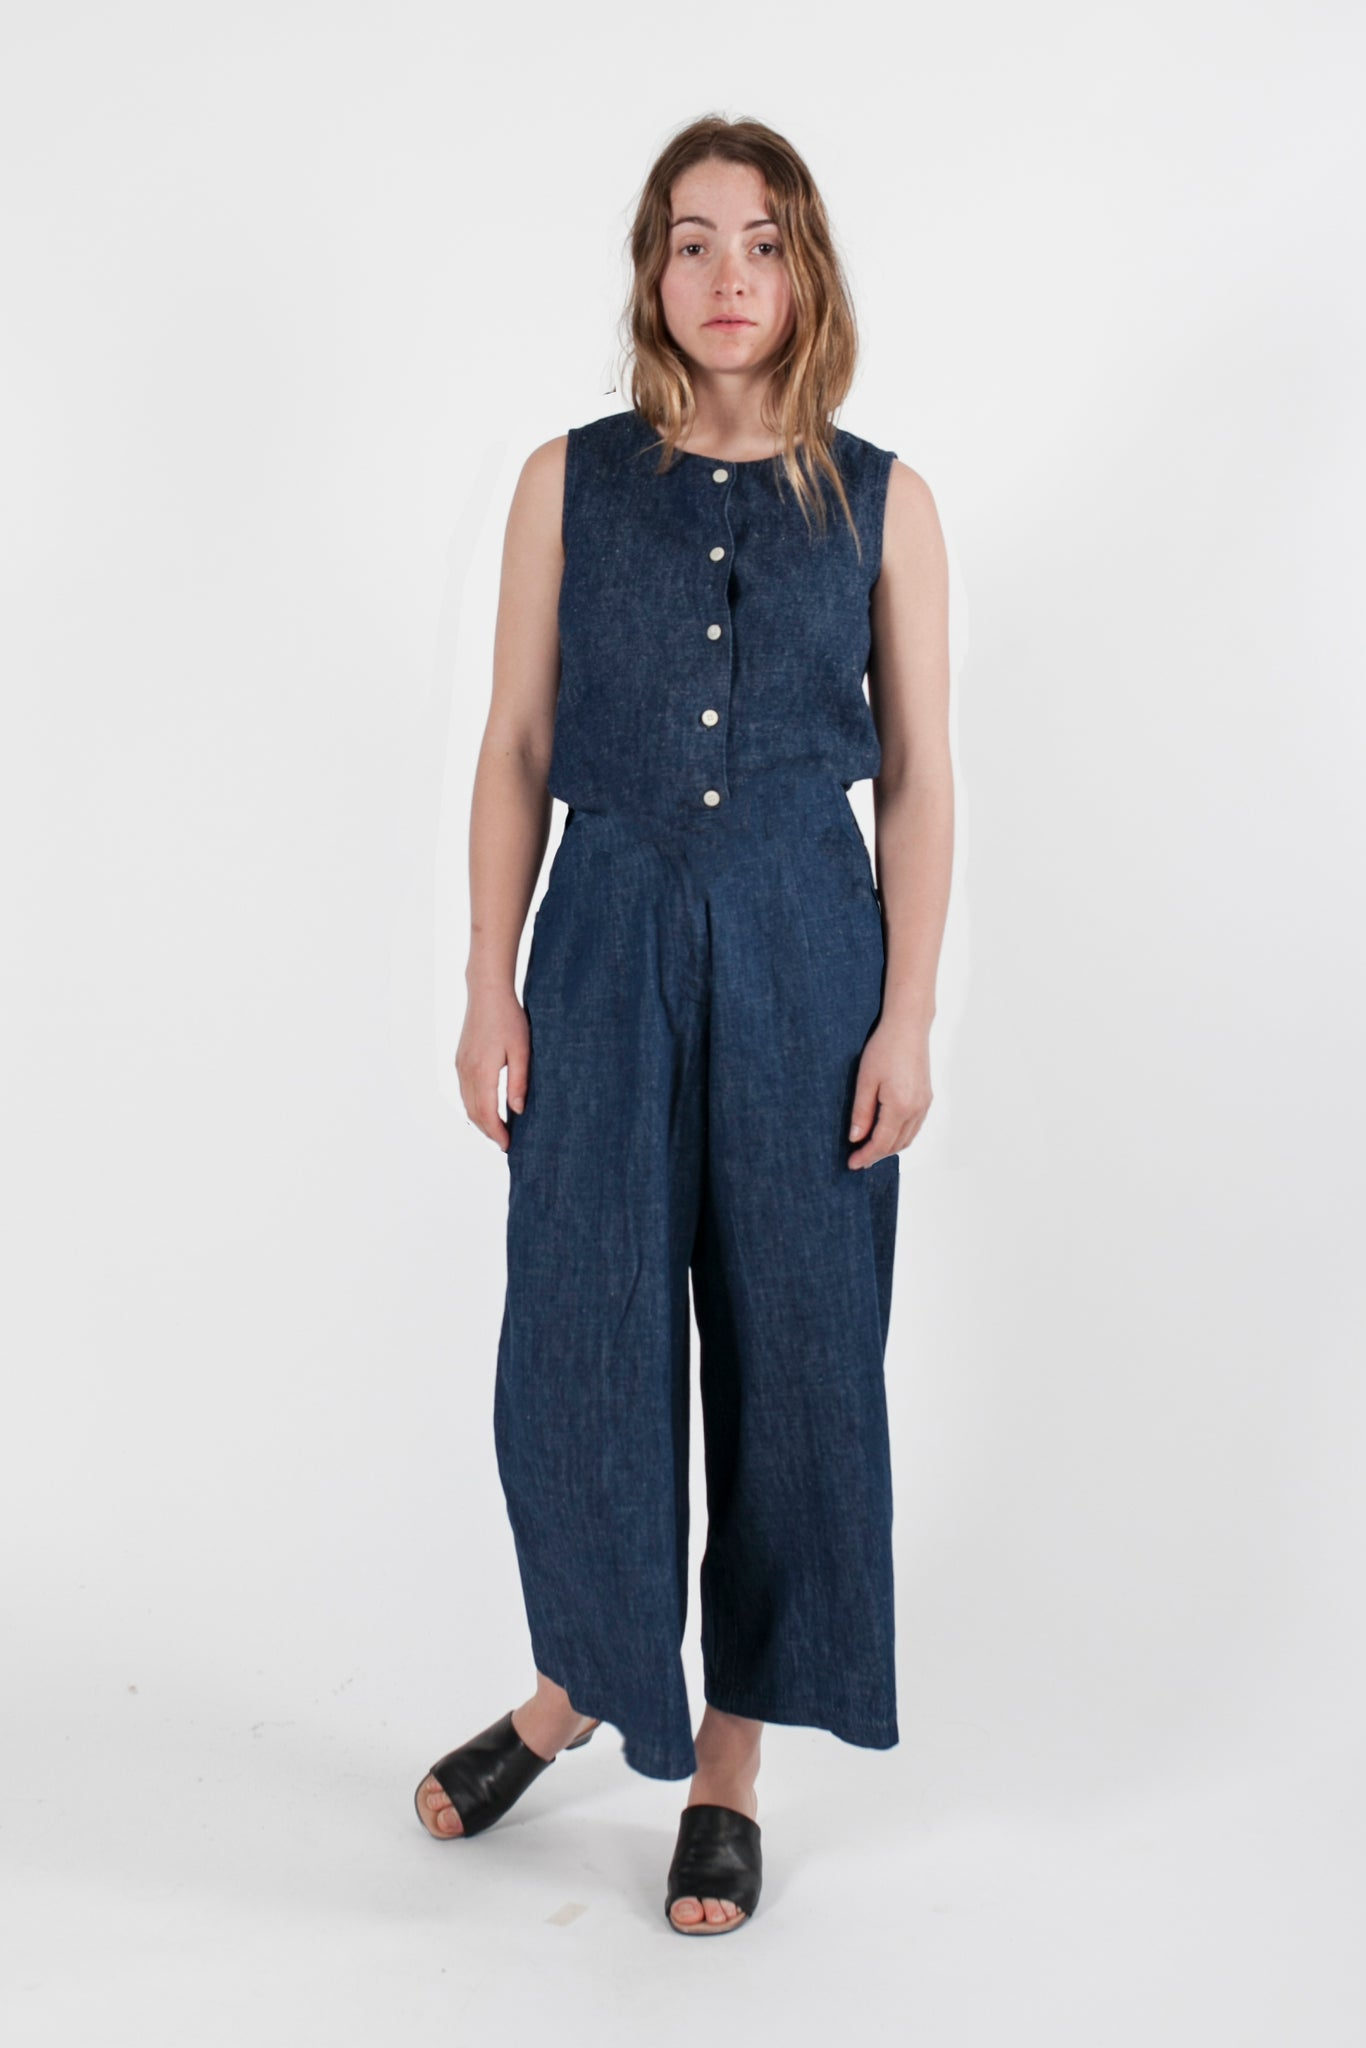 HEMP DENIM DRAWSTRING JUMPSUIT